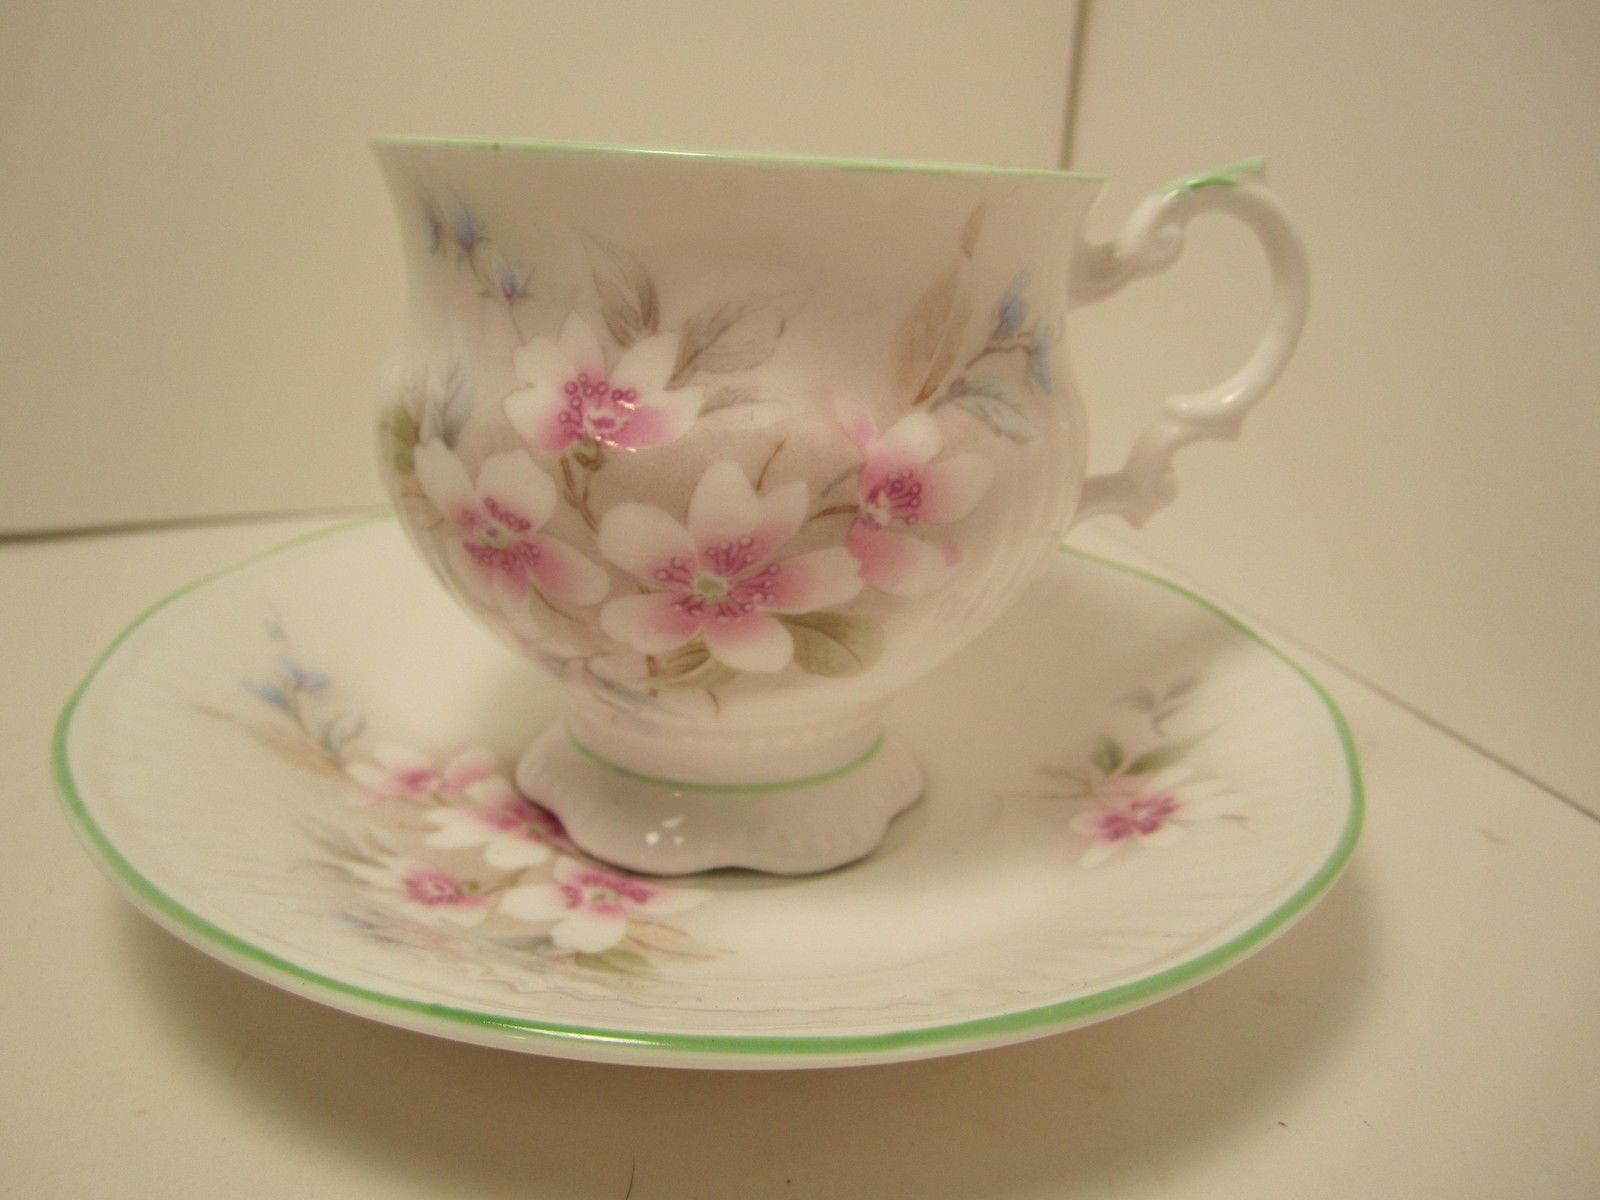 Royal albert bone china tea cup amp saucer winsome pattern ebay - For Sale Today This Pretty Elizabethan China Tea Cup Saucer White With Pink Flowers And